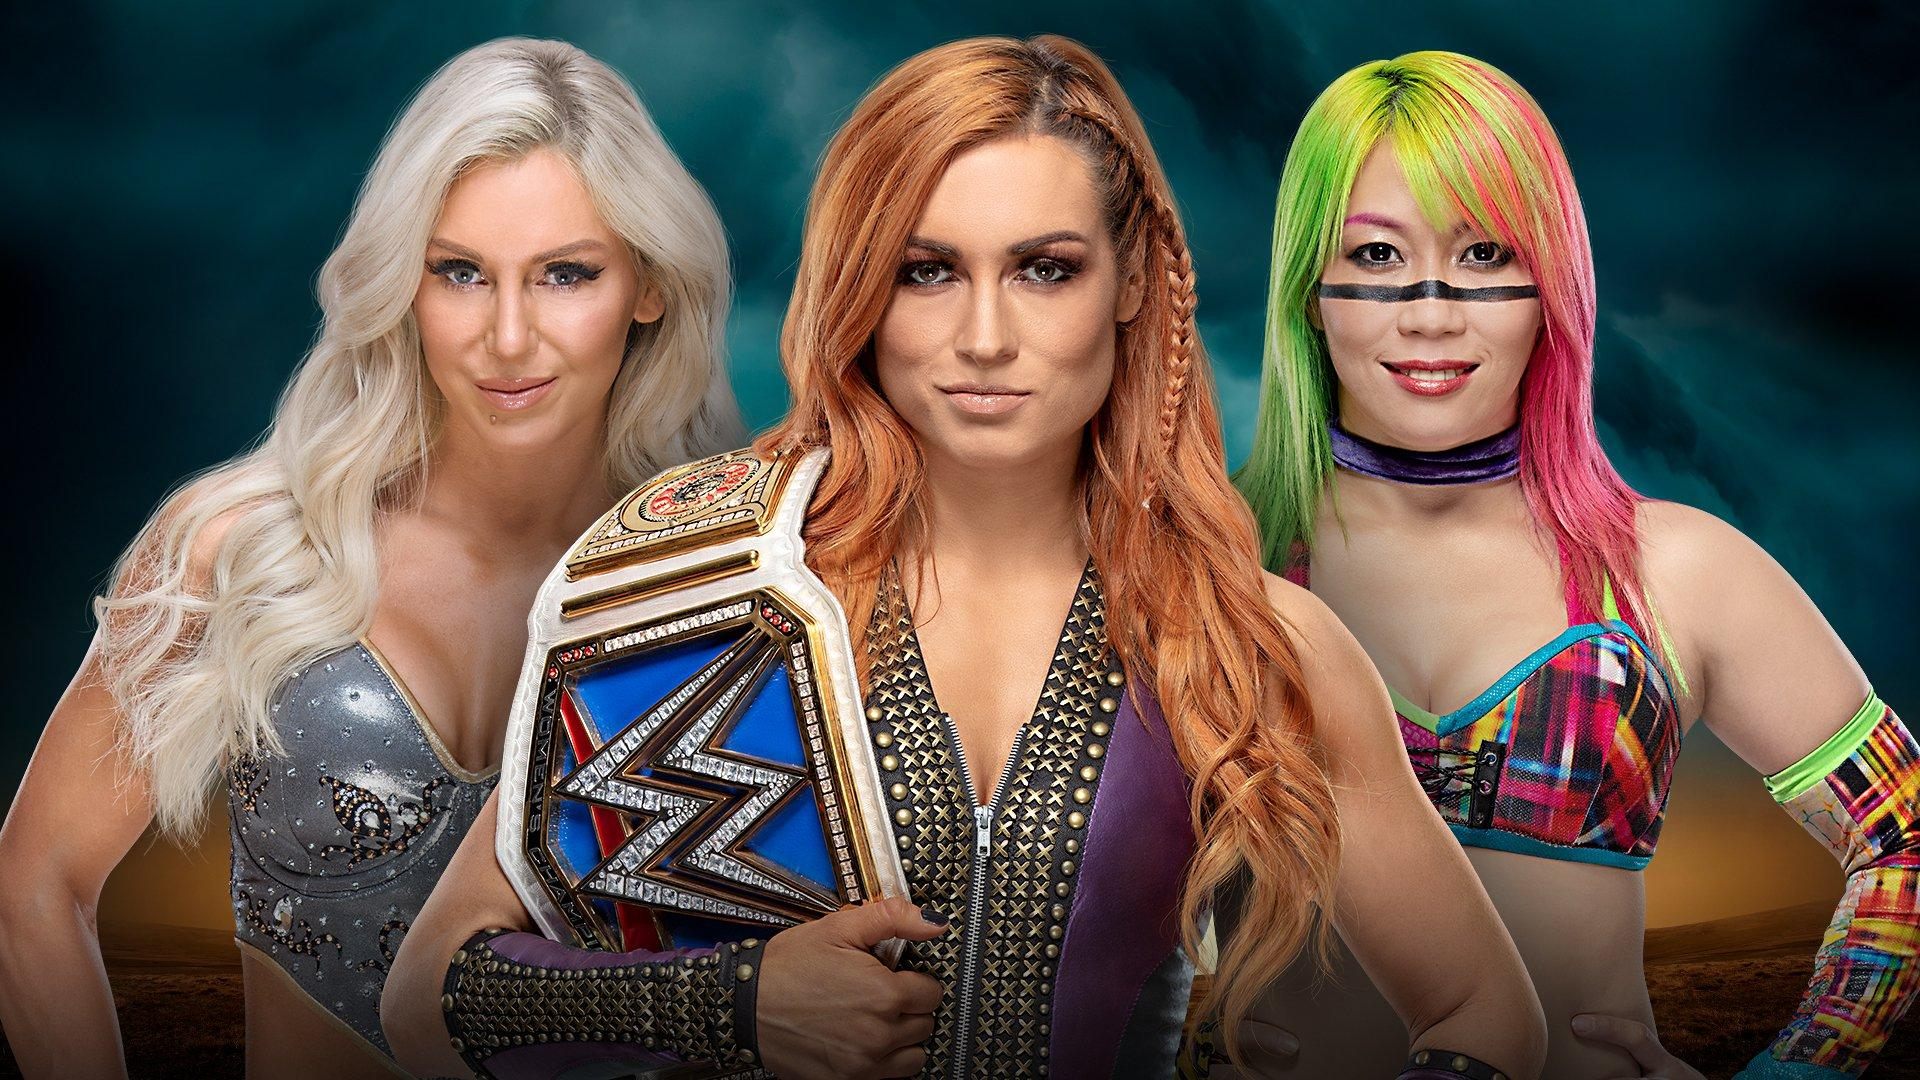 SmackDown Women's Champion Becky Lynch vs Charlotte Flair vs Asuka